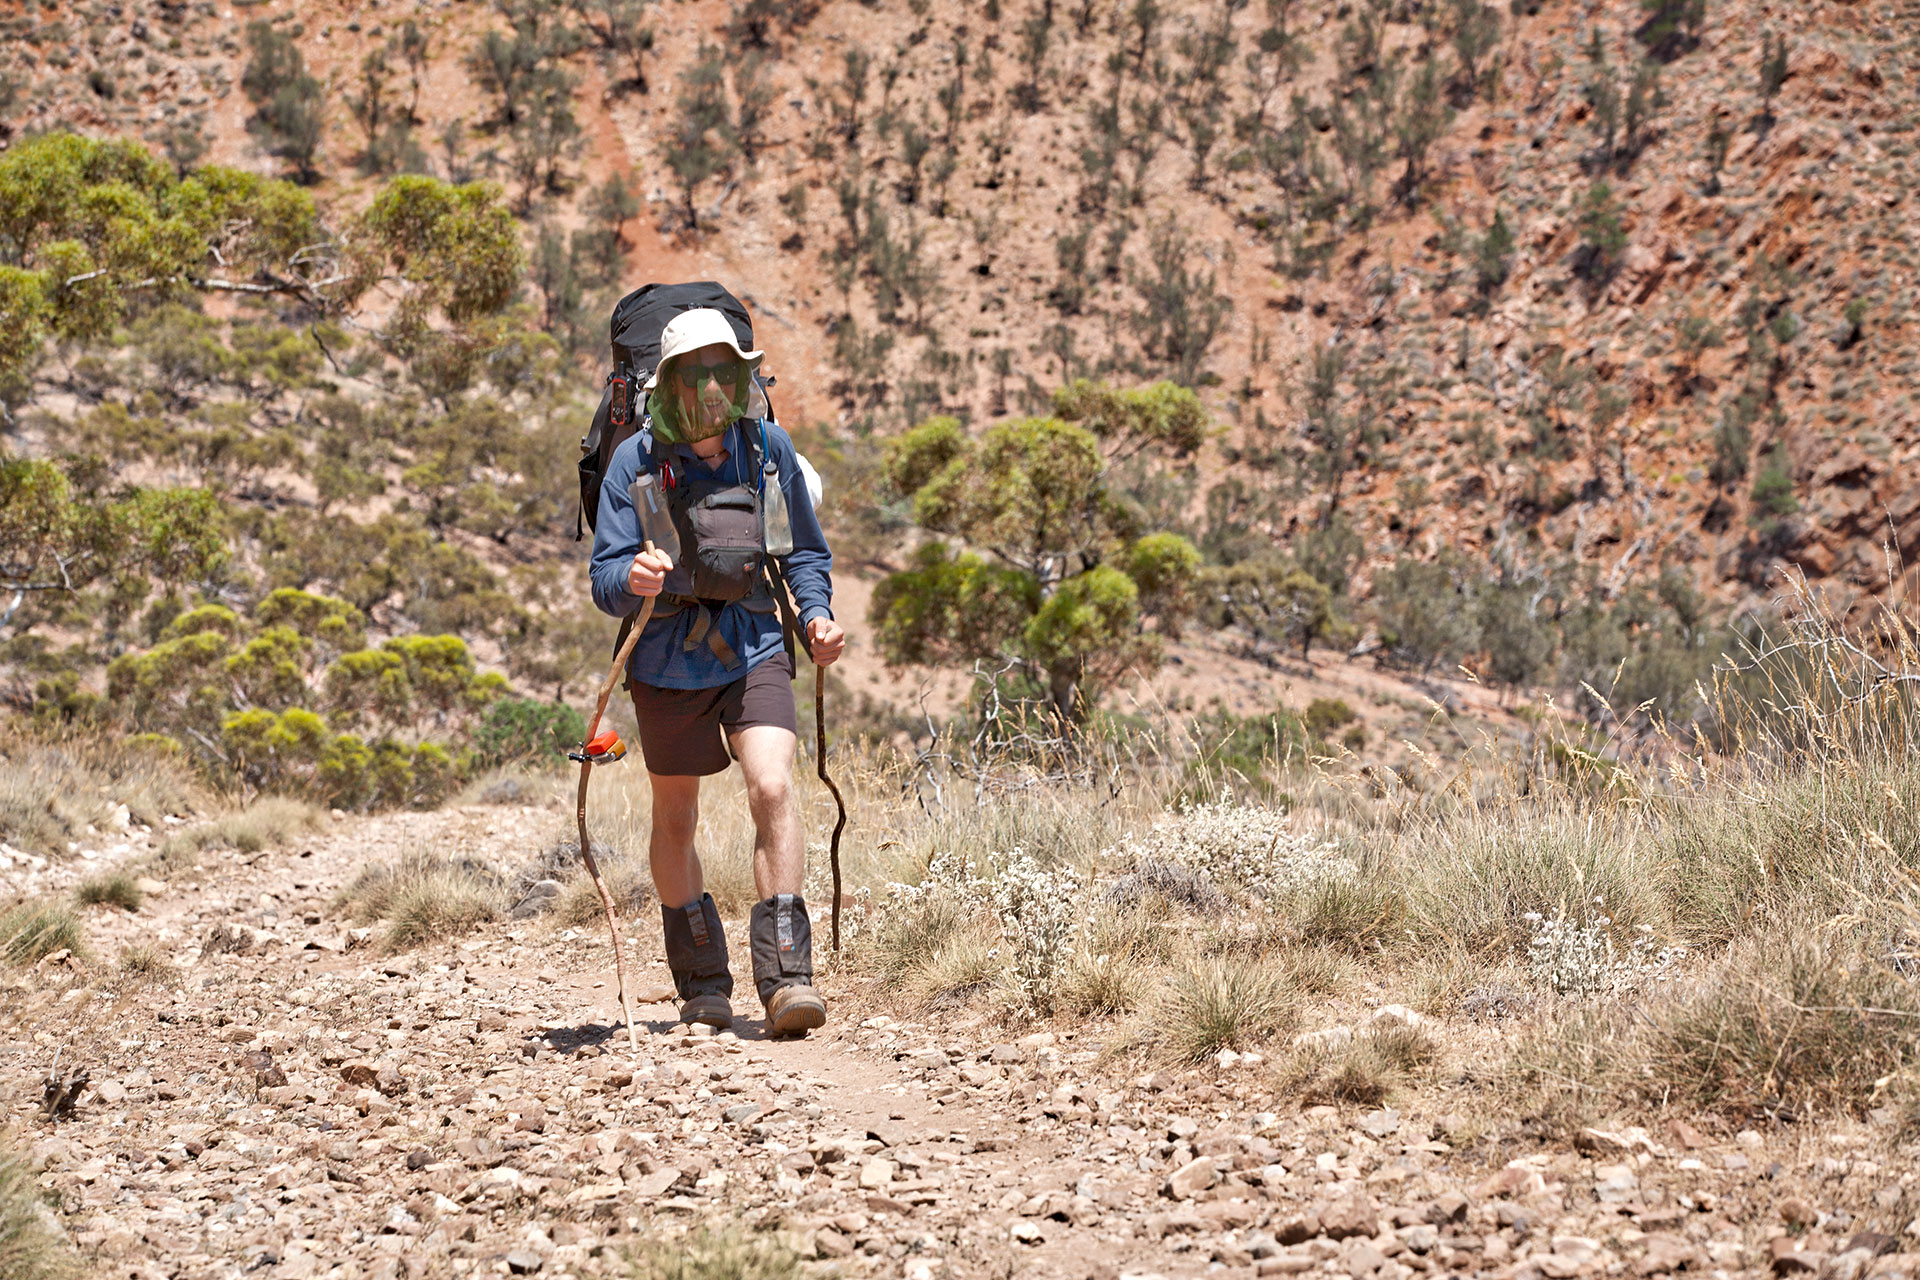 Dan March-Feltham on the Wilkatana section of the Heysen Trail - On day 55+. - photo by Tim Froling